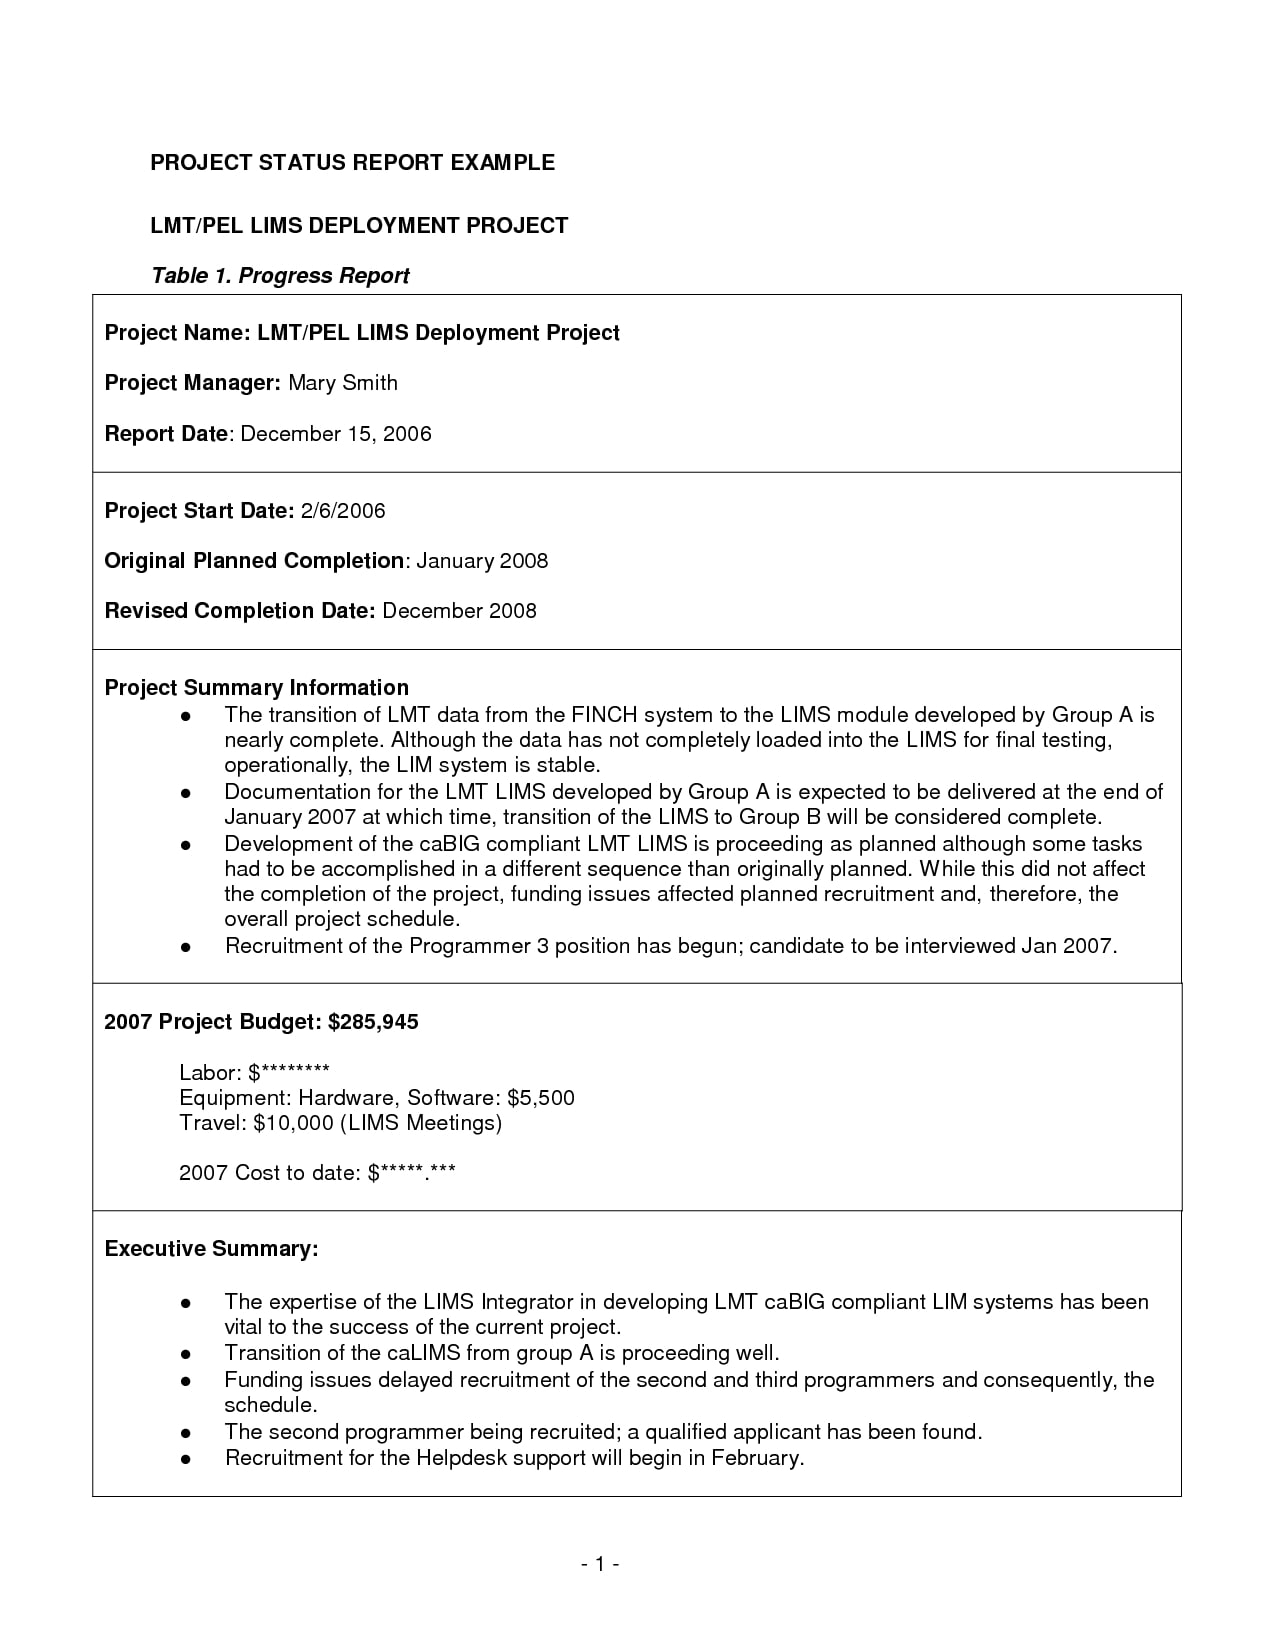 business project report example pdf